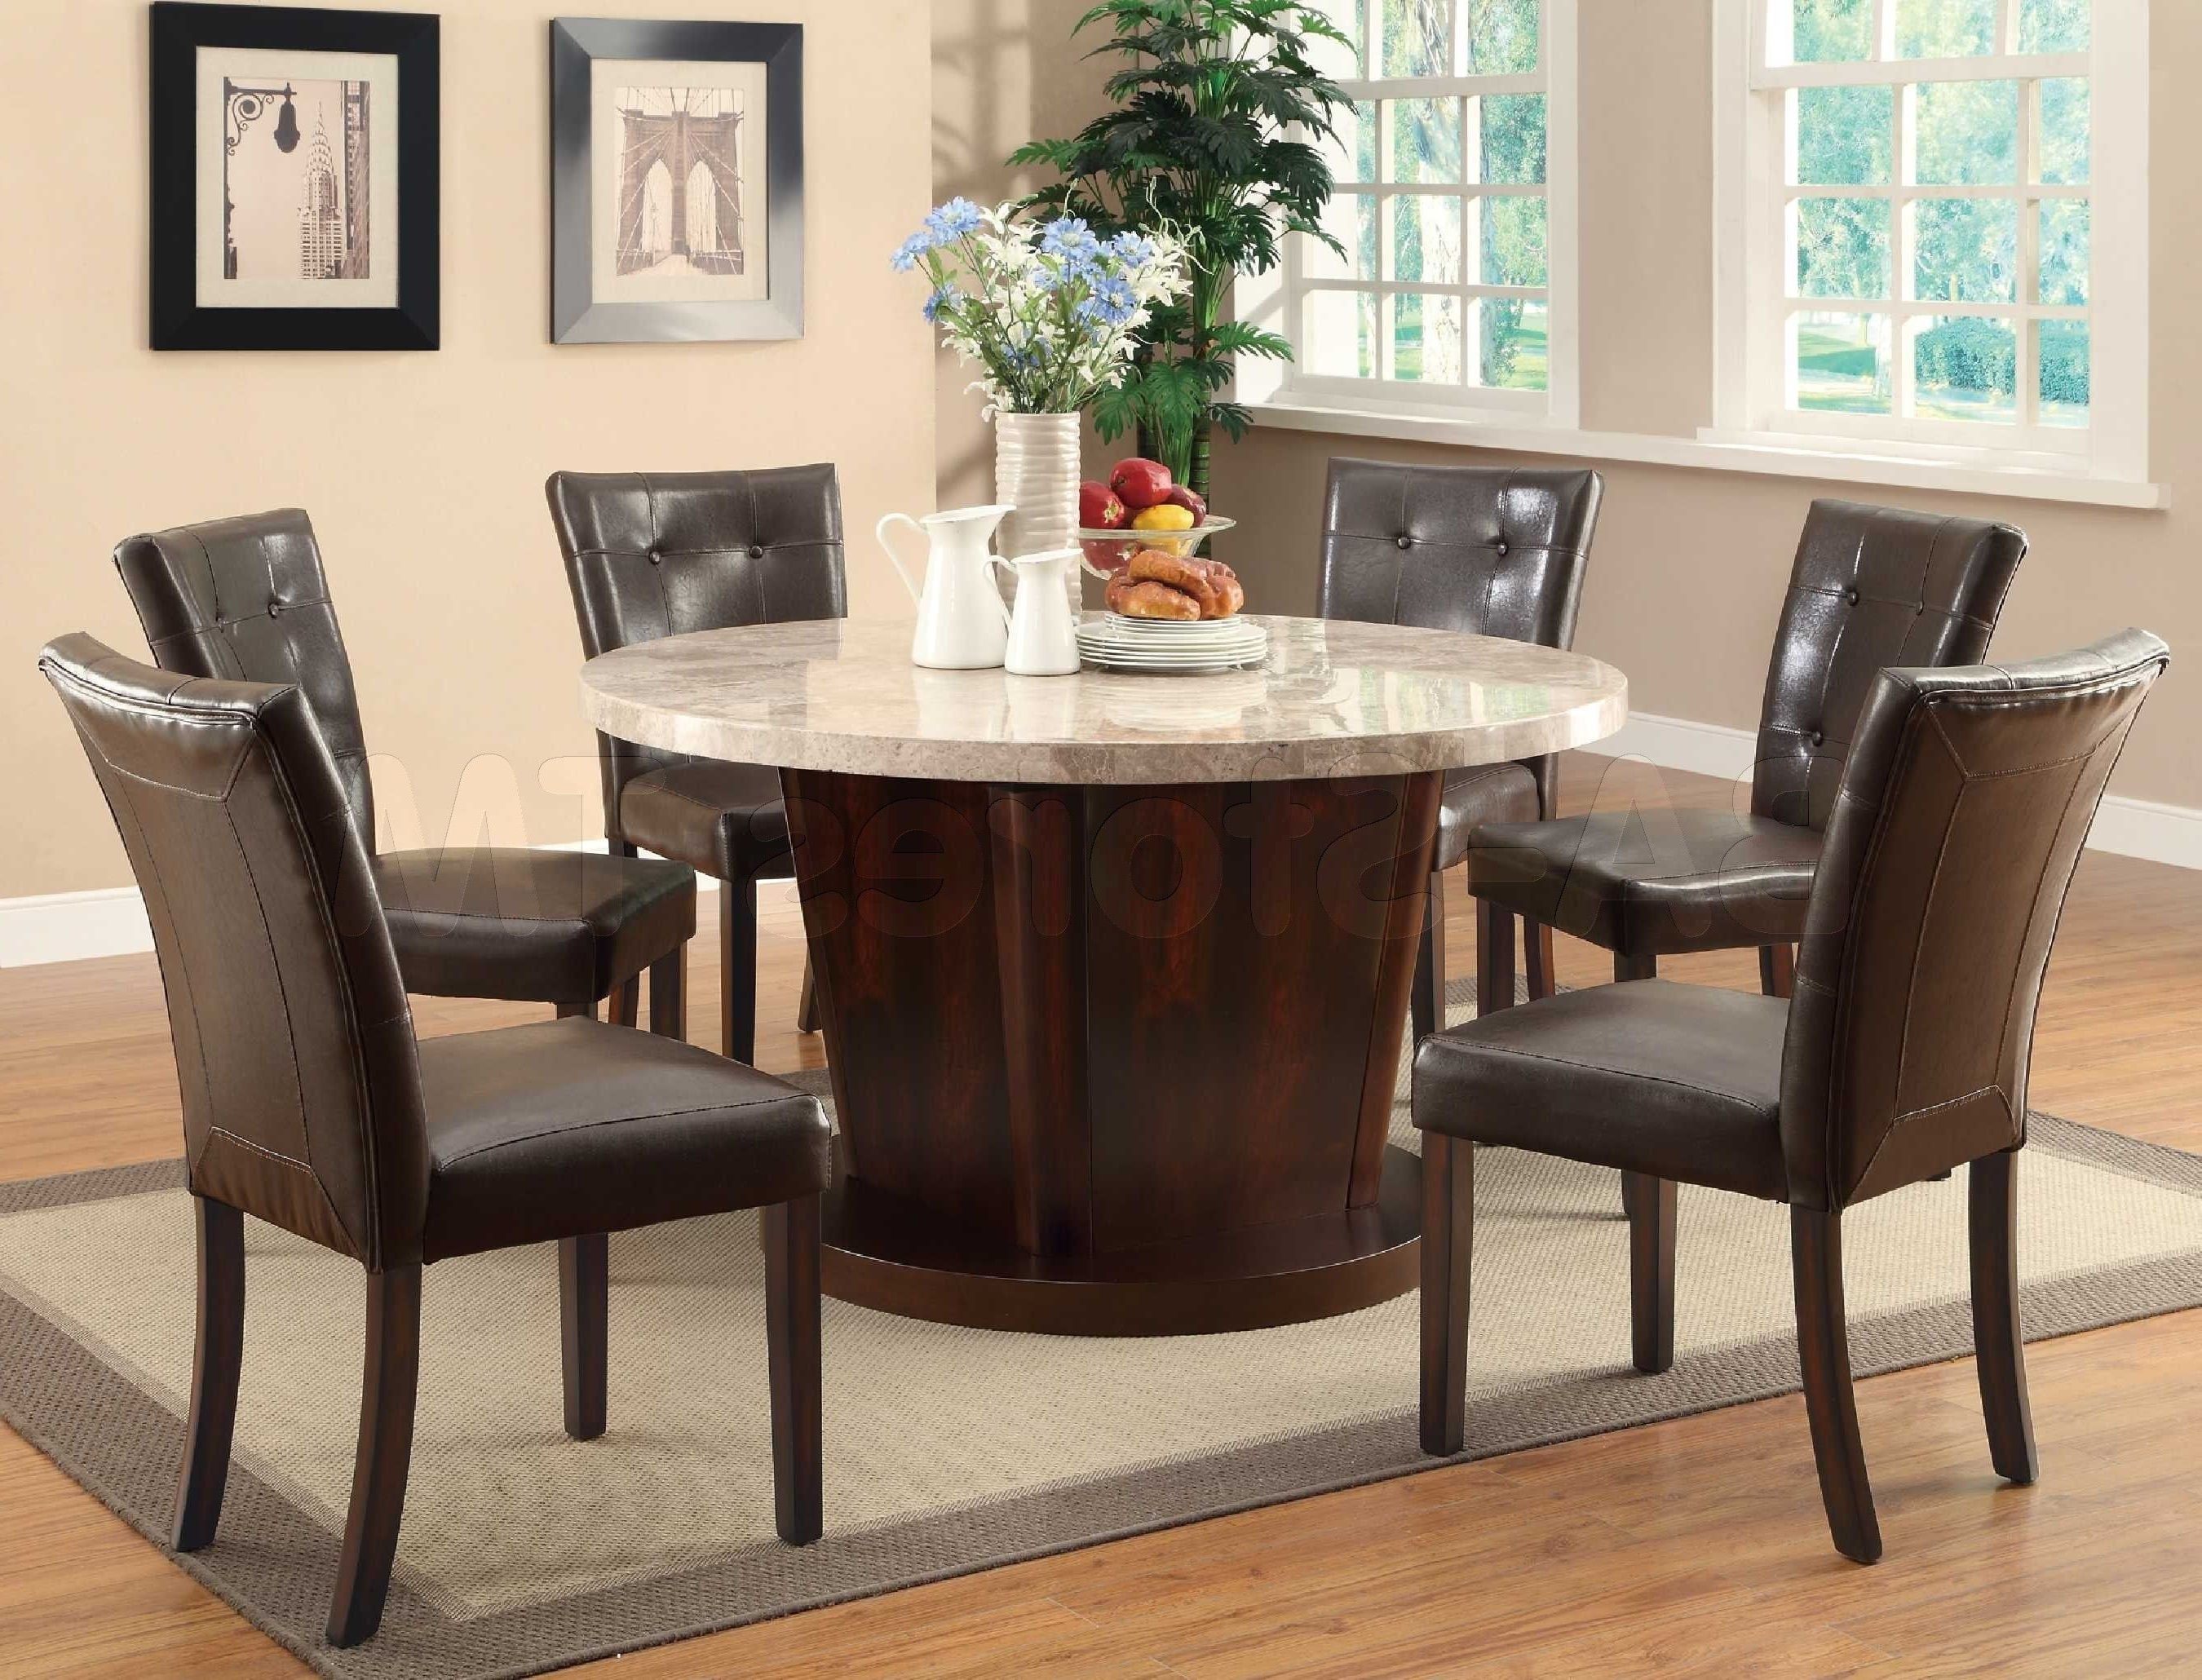 Norwood 6 Piece Rectangular Extension Dining Sets With Upholstered Side Chairs Intended For Best And Newest Low Cost Dining Room Tables (View 25 of 25)